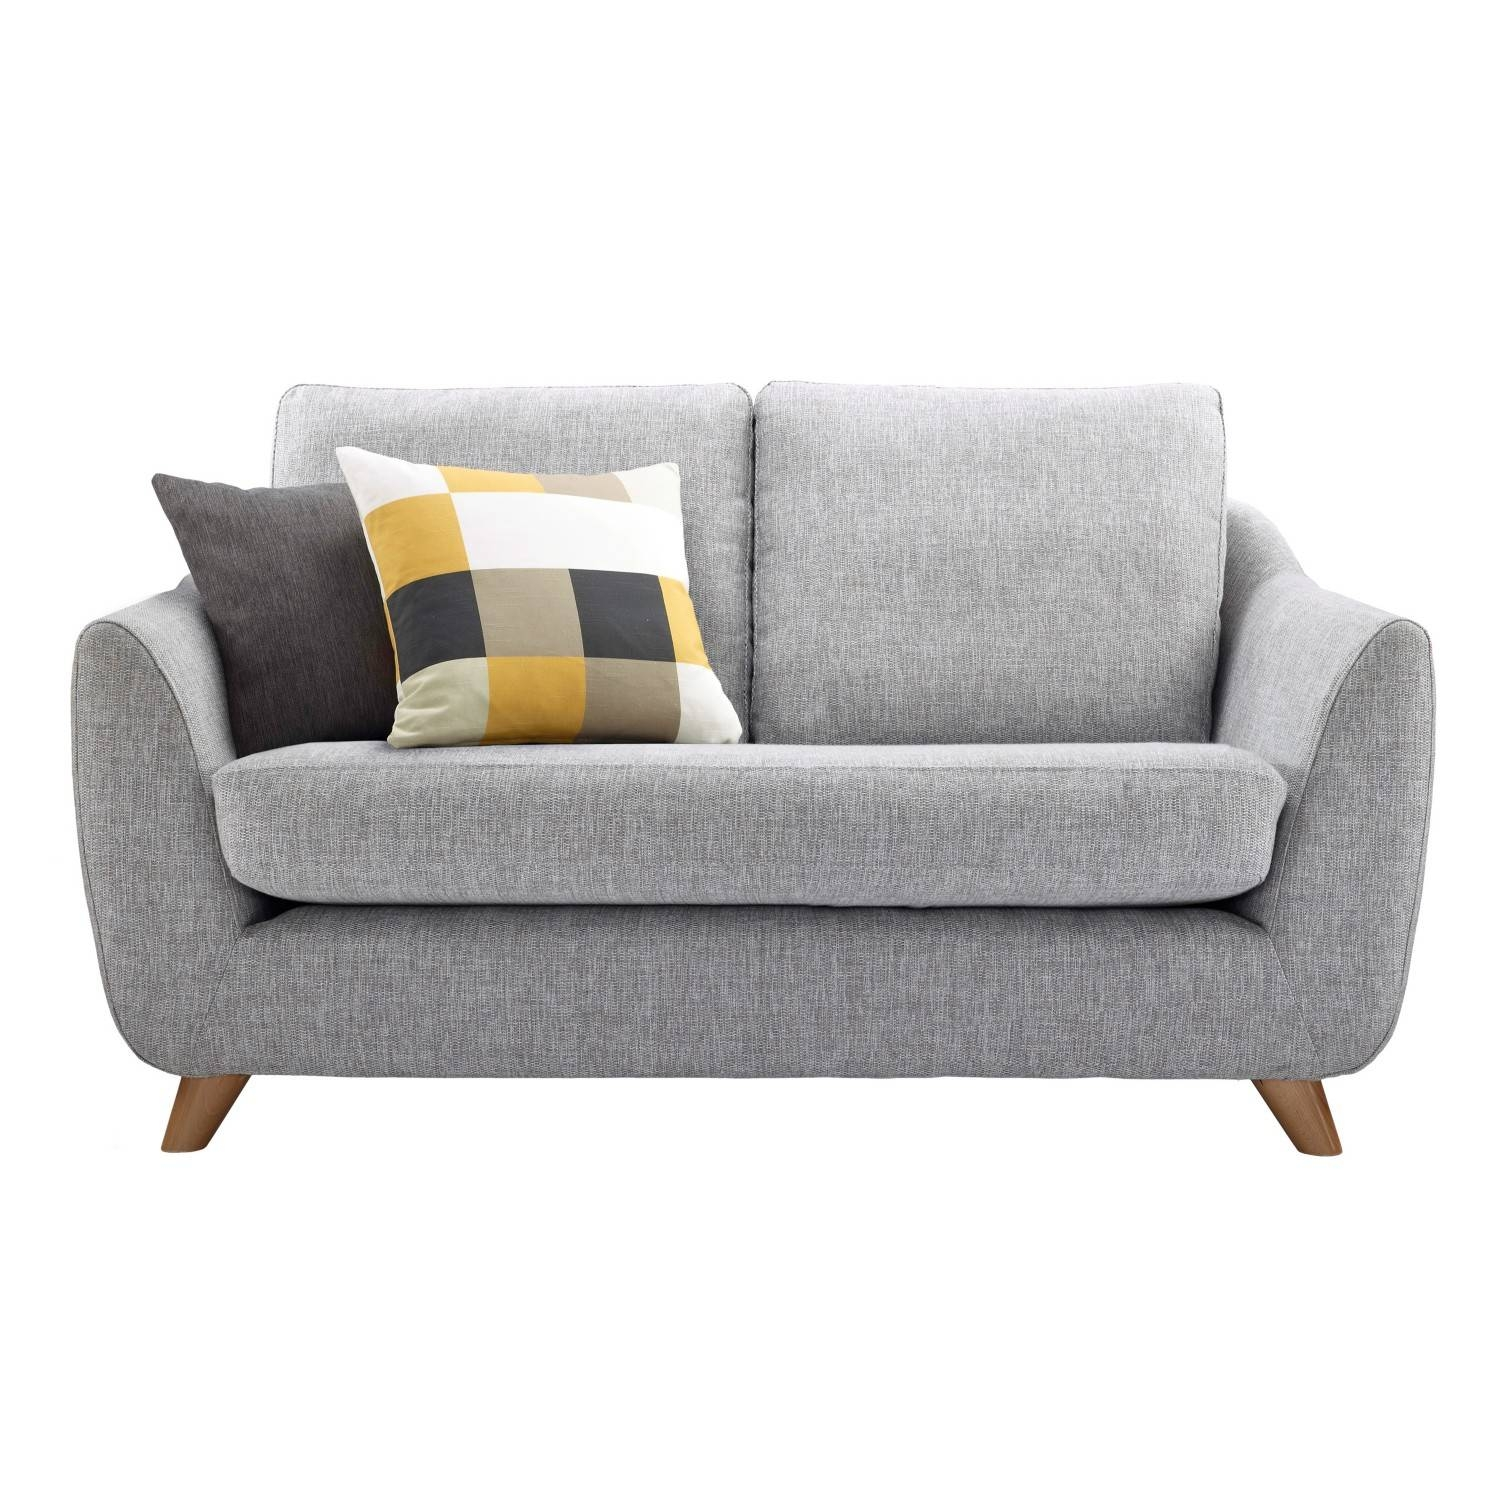 Amazing Long Modern Sofa Decor Color Ideas Photo On Long Modern with regard to Long Modern Sofas (Image 3 of 30)